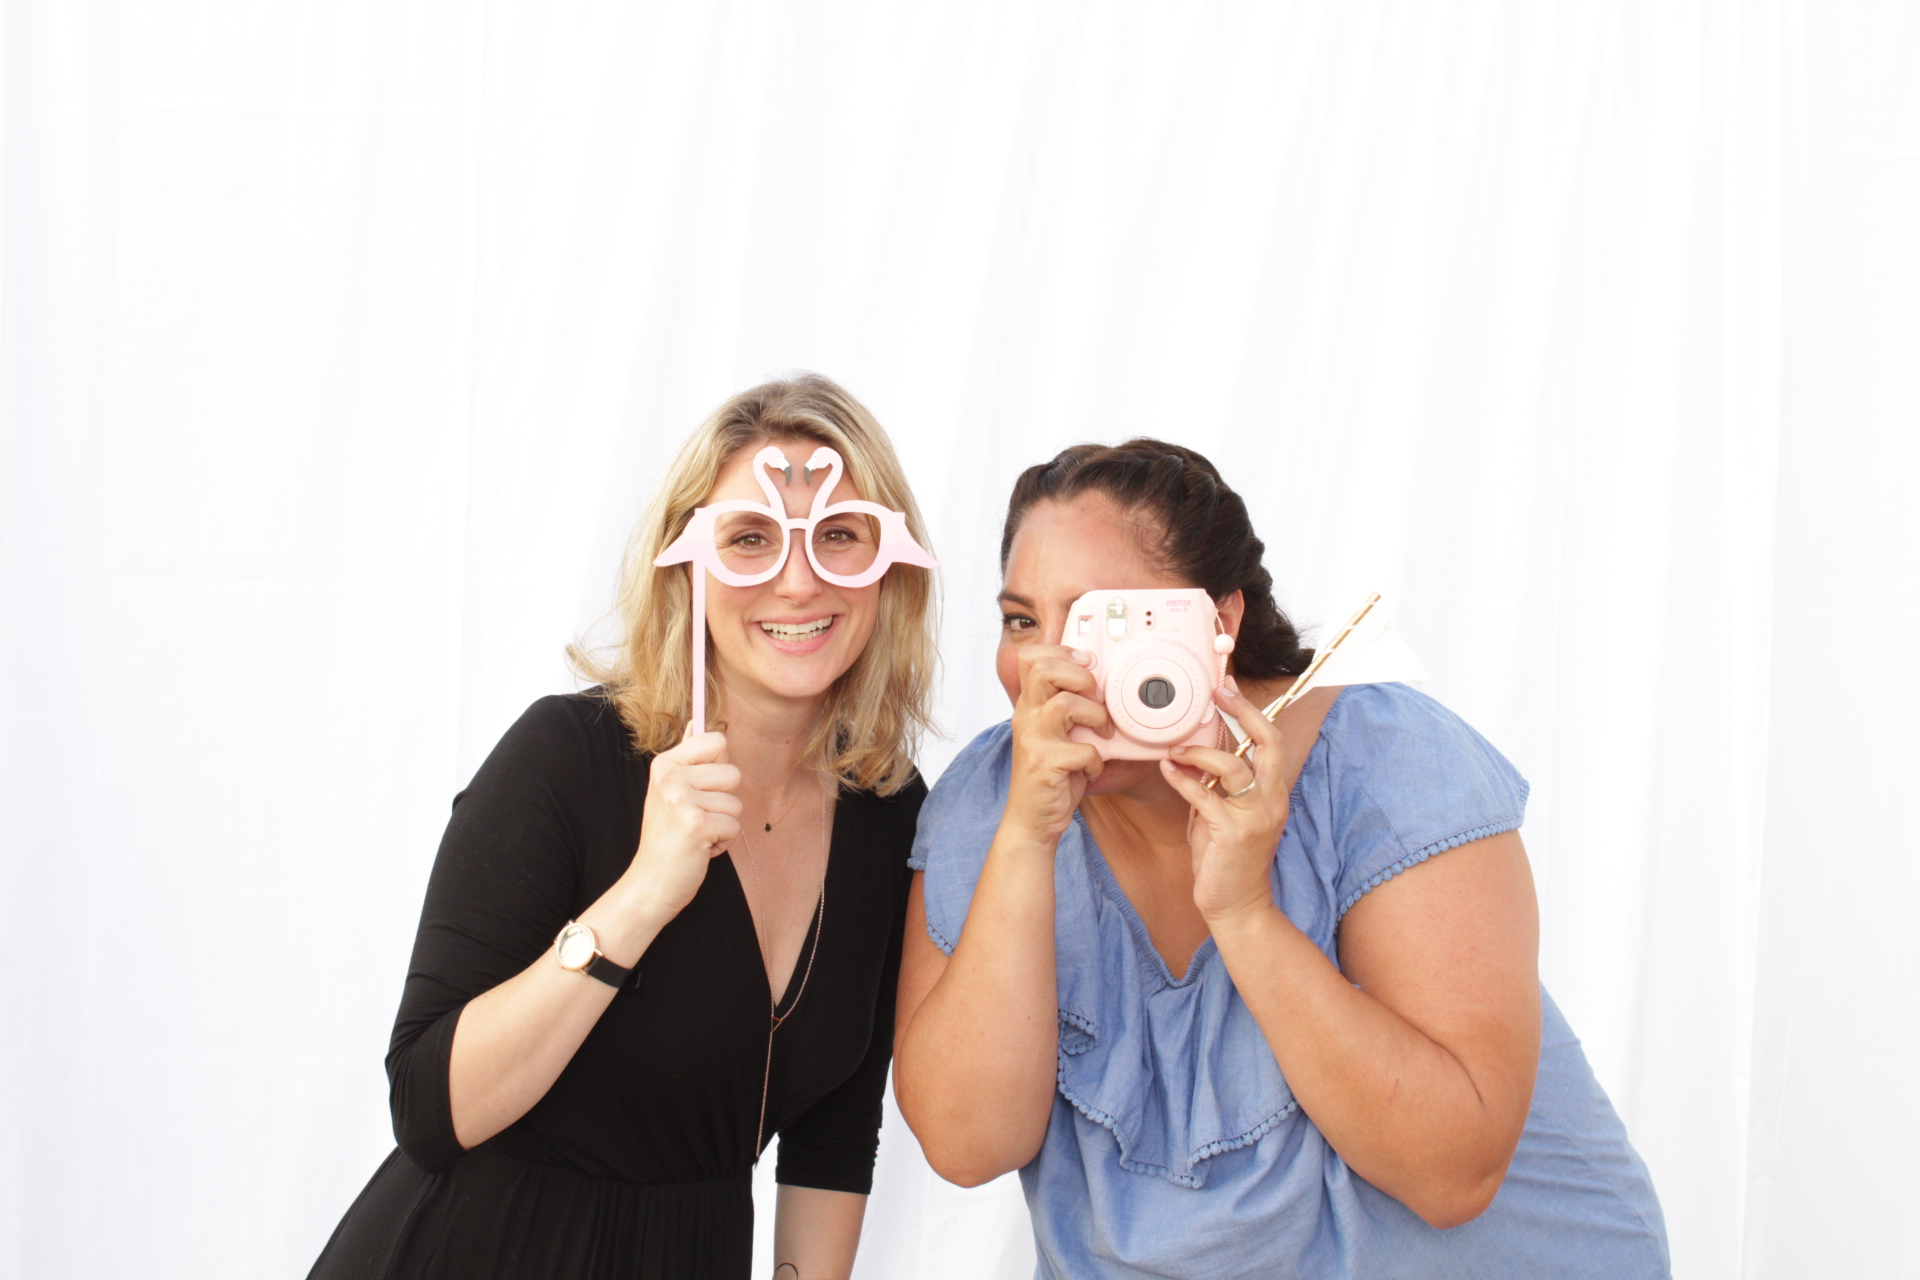 Los angeles based photo booth for boss bash celebration Los Angeles Pasadena or SoCal Southern California based photo booth rental for weddings and events. Customized templates